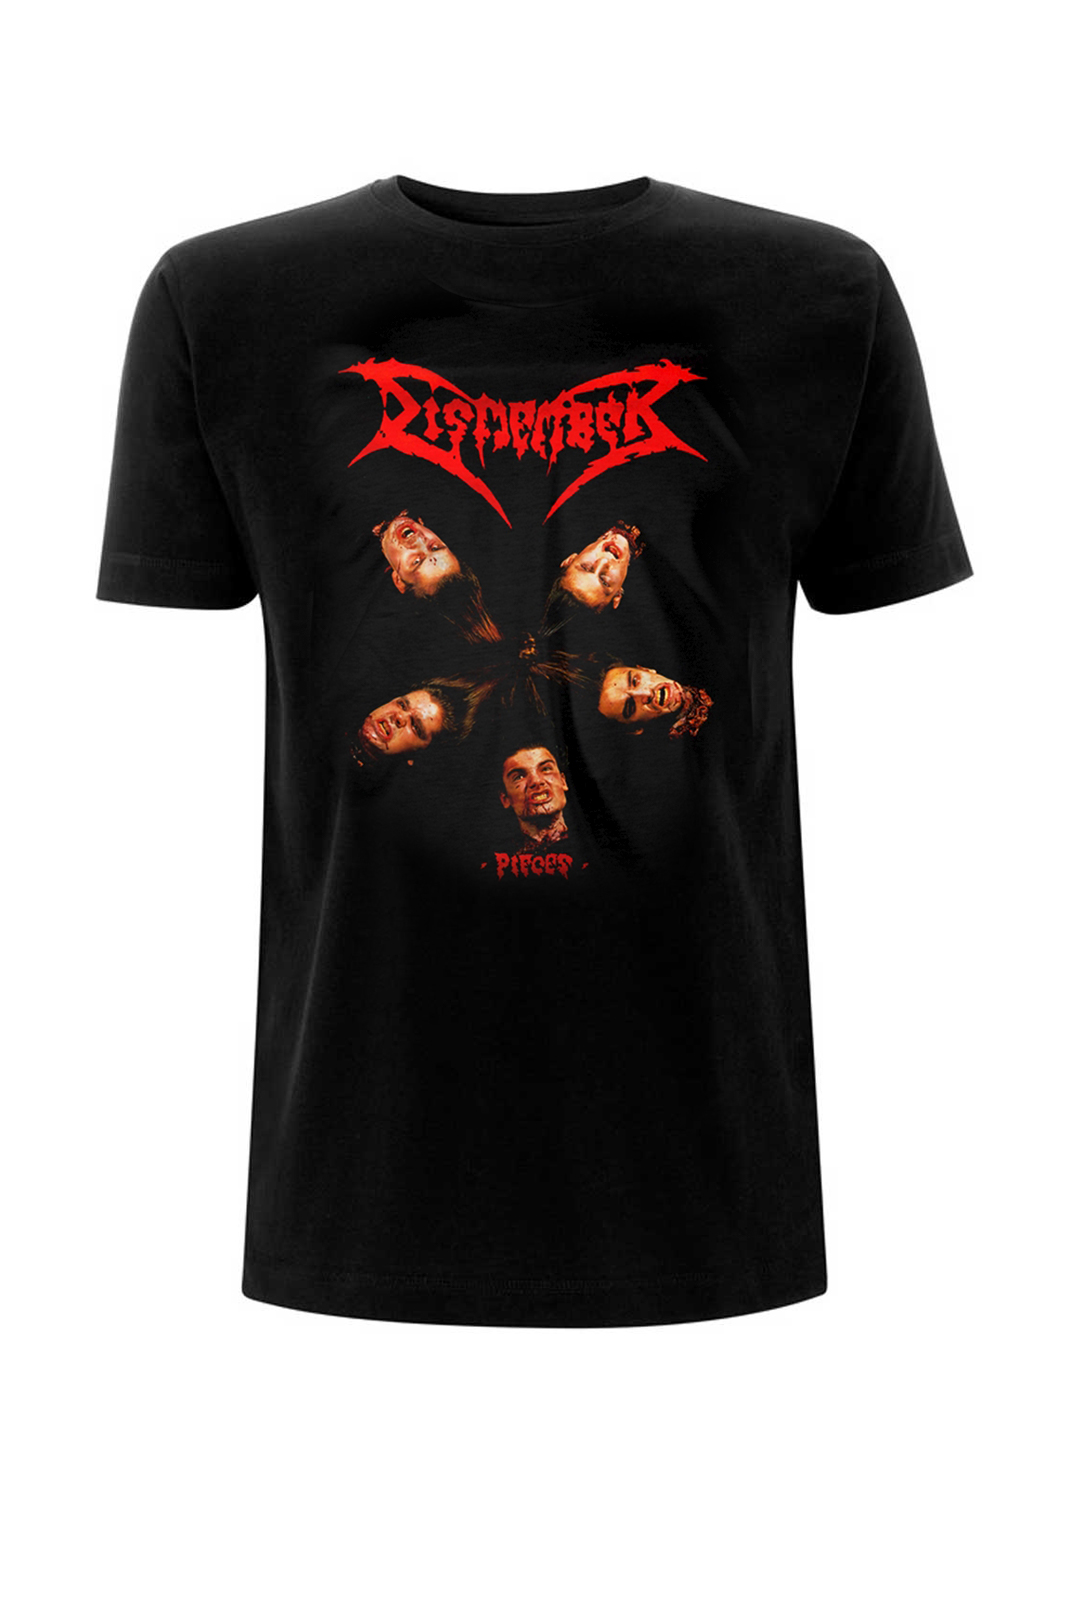 Tee Dismember Pieces Black